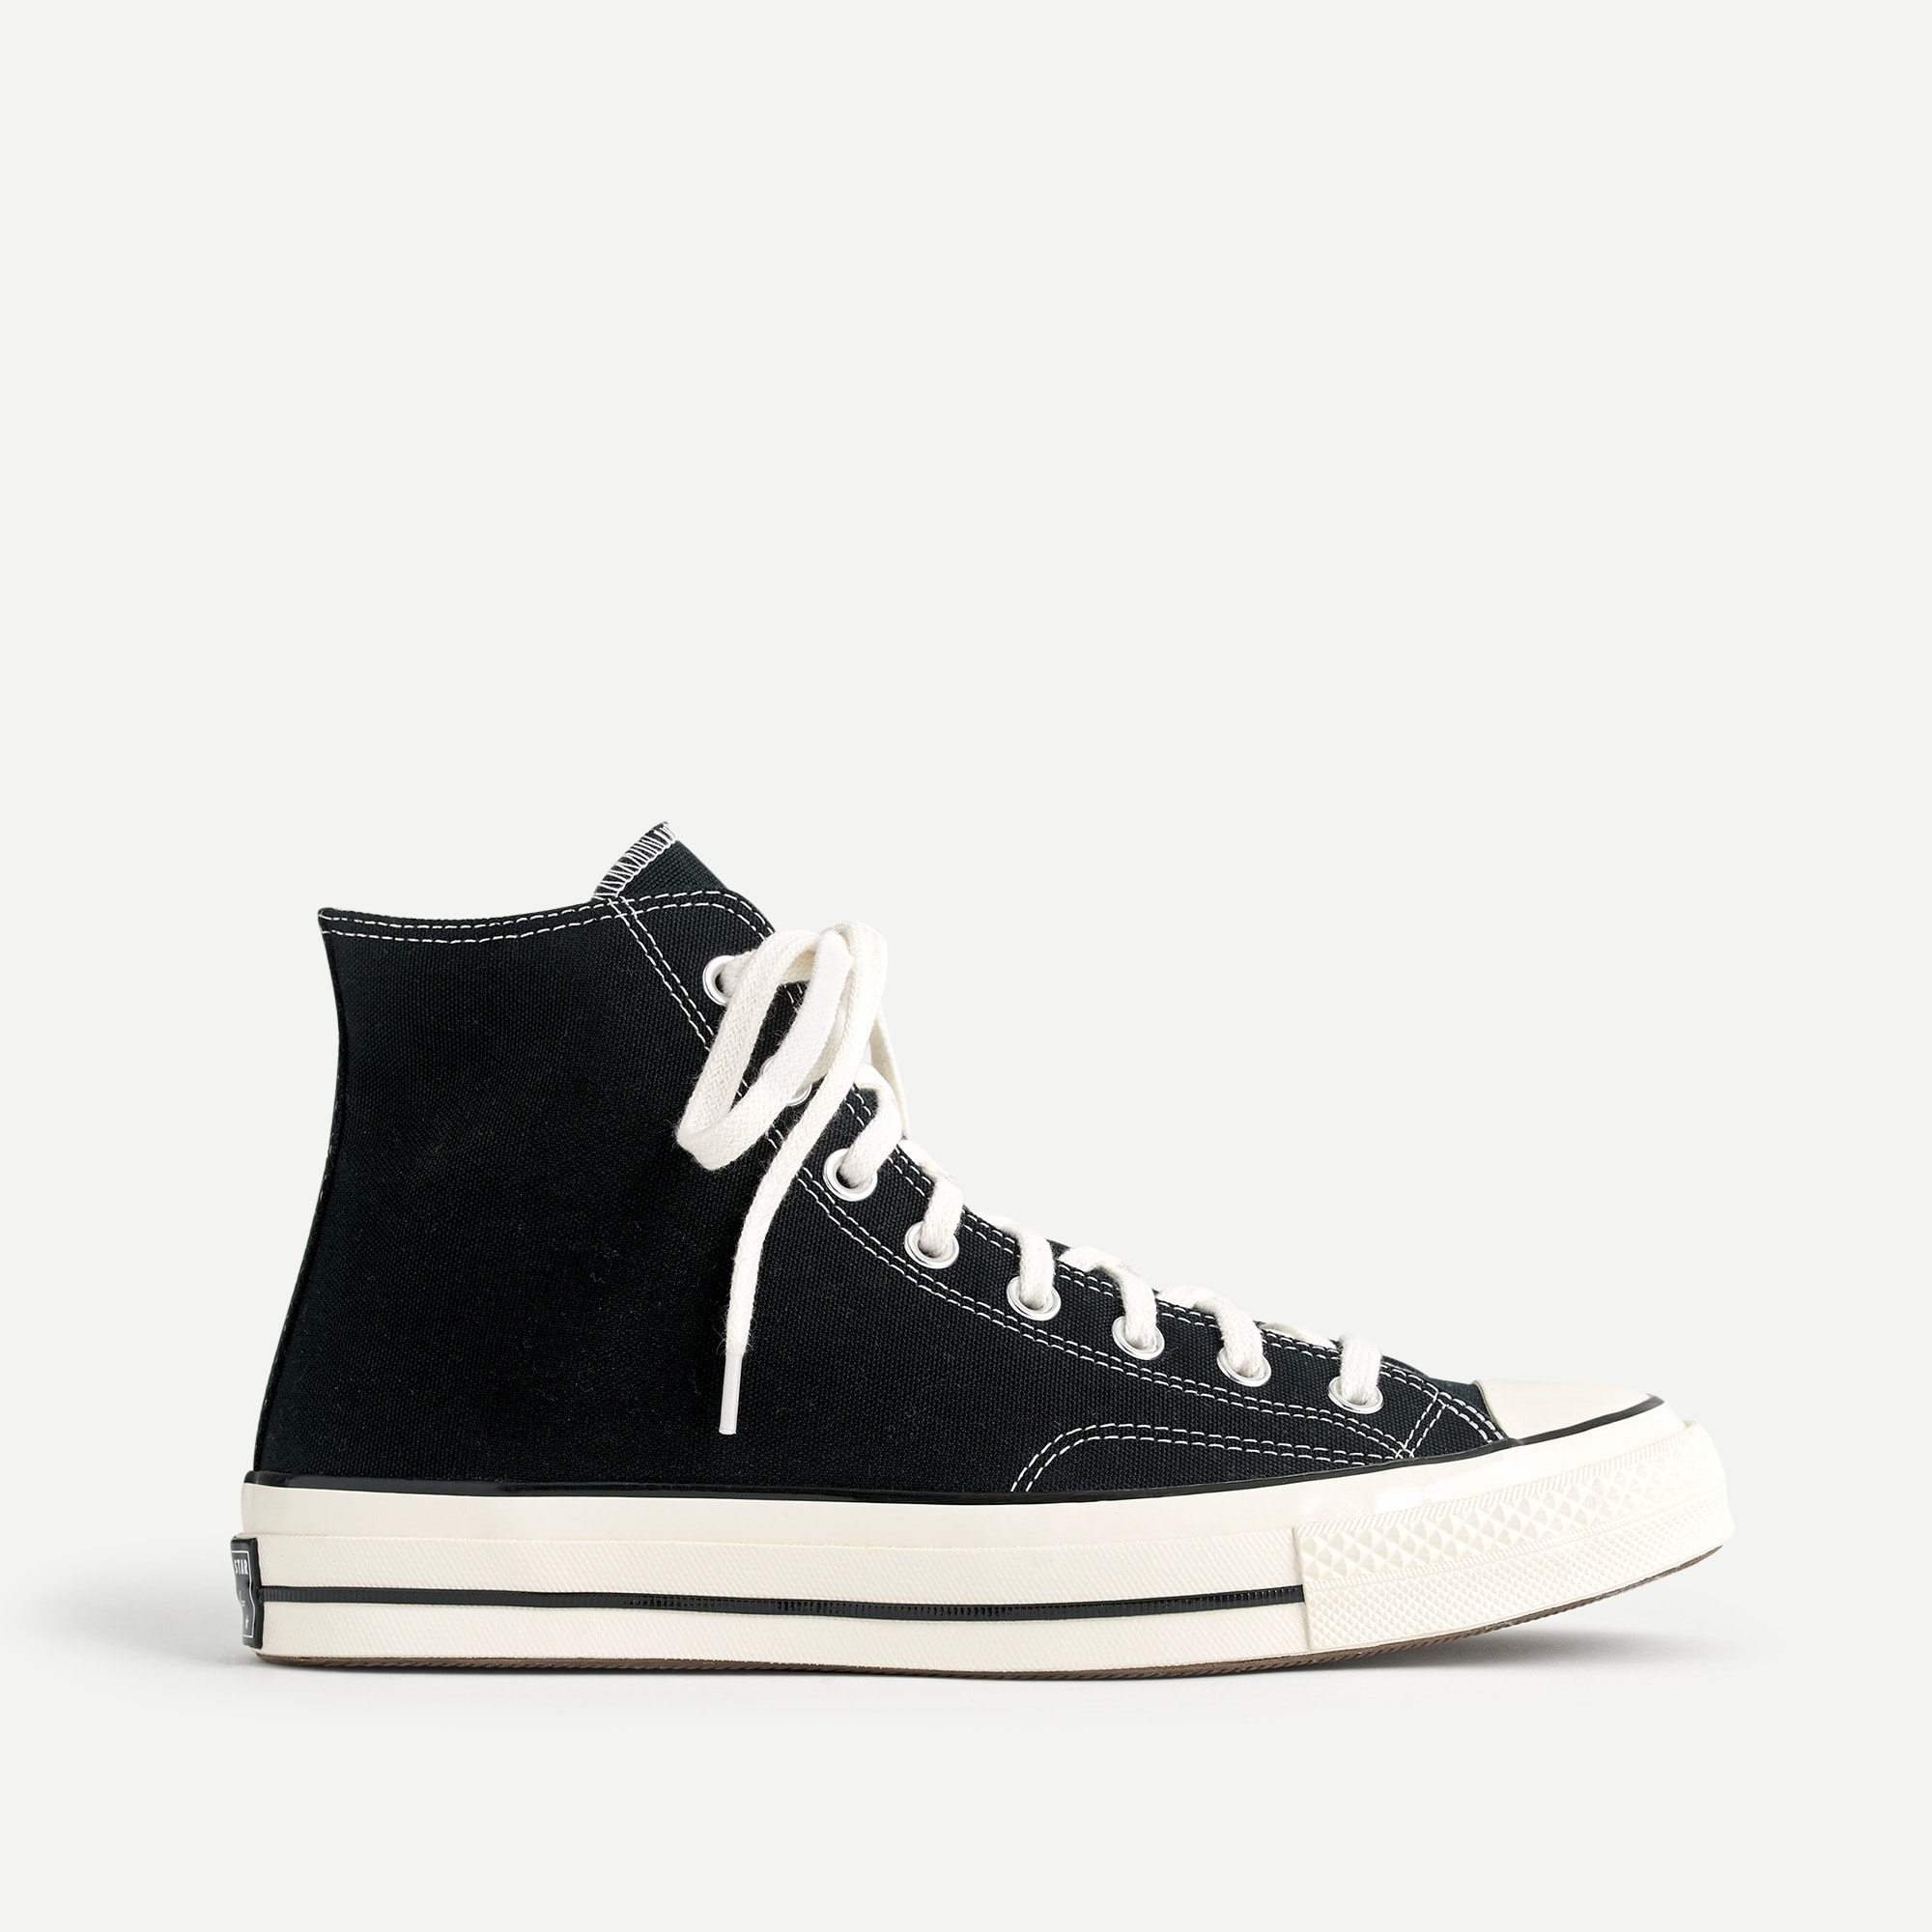 Converse® Chuck Taylor All Star '70 high-top sneakers